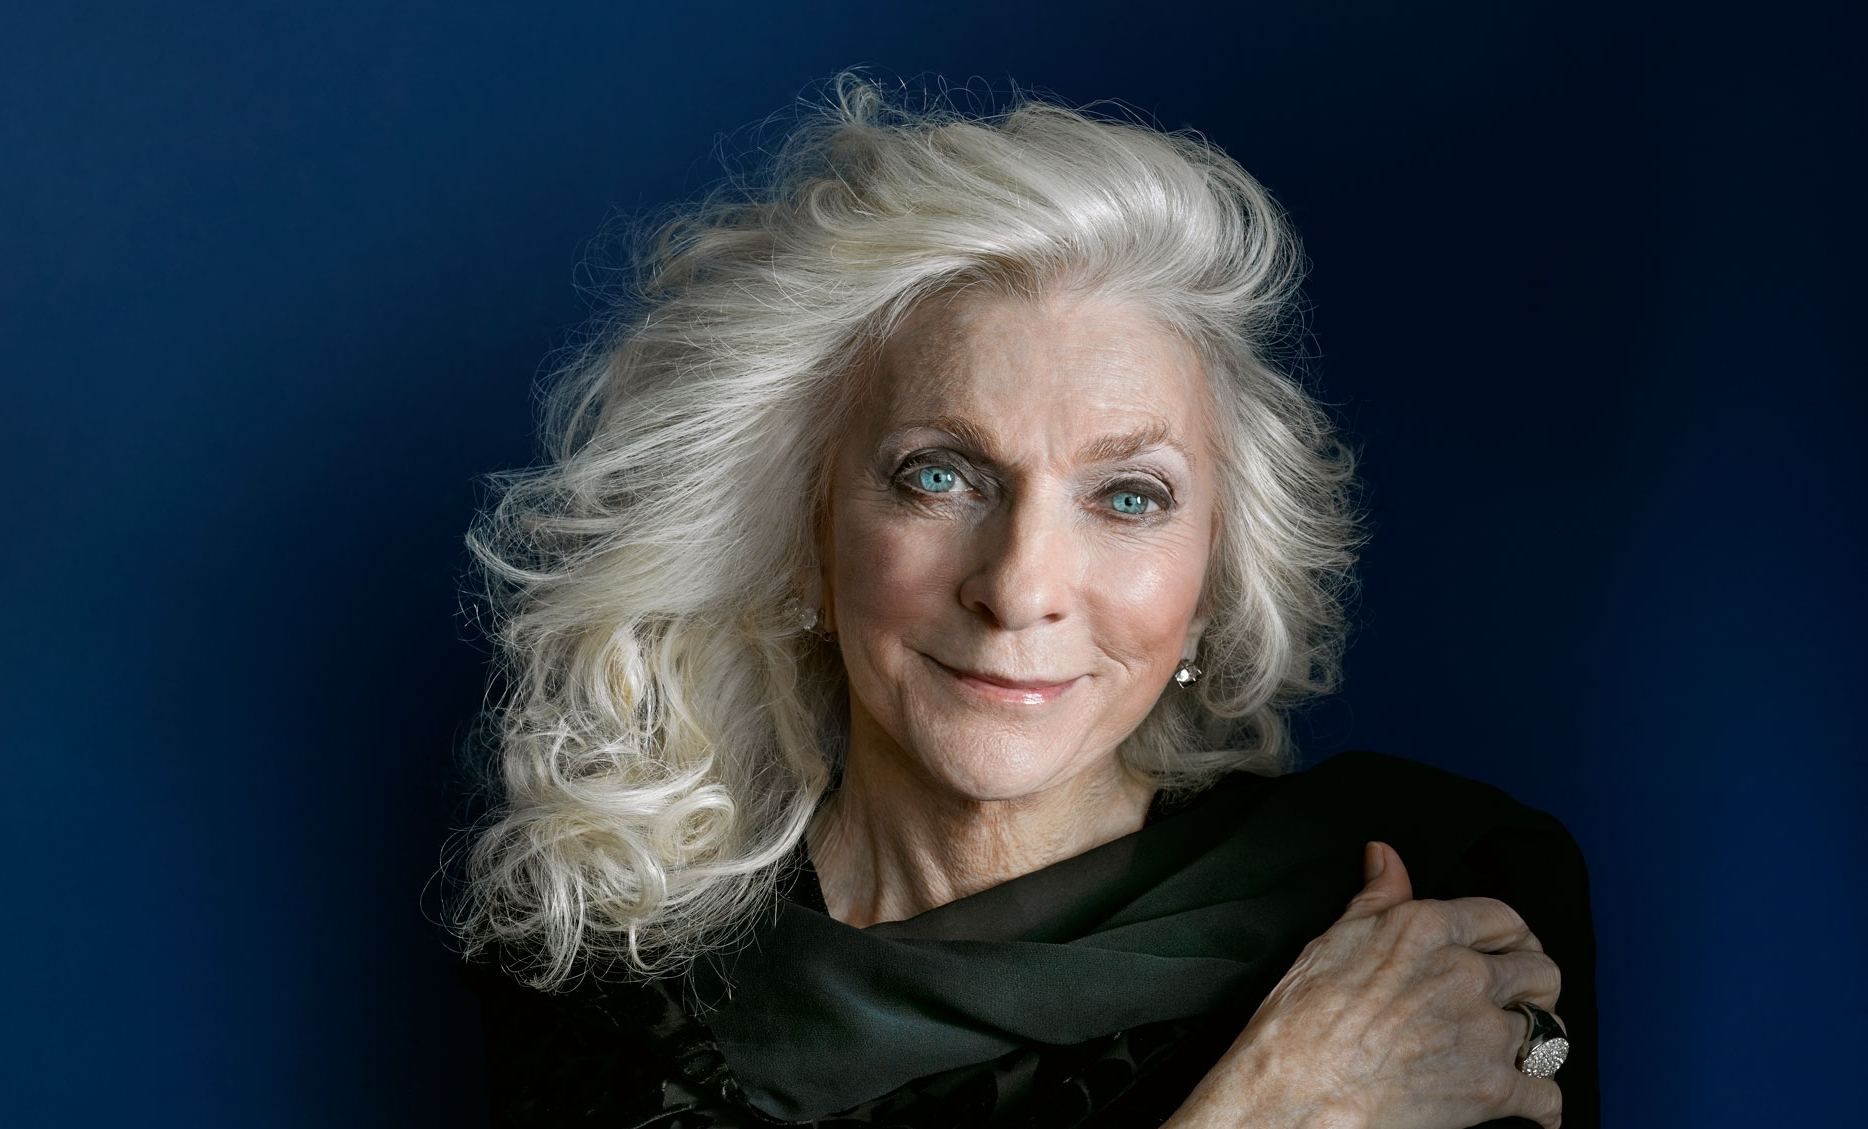 -images-uploads-gallery-judy_collins_Trent_A (1).jpg